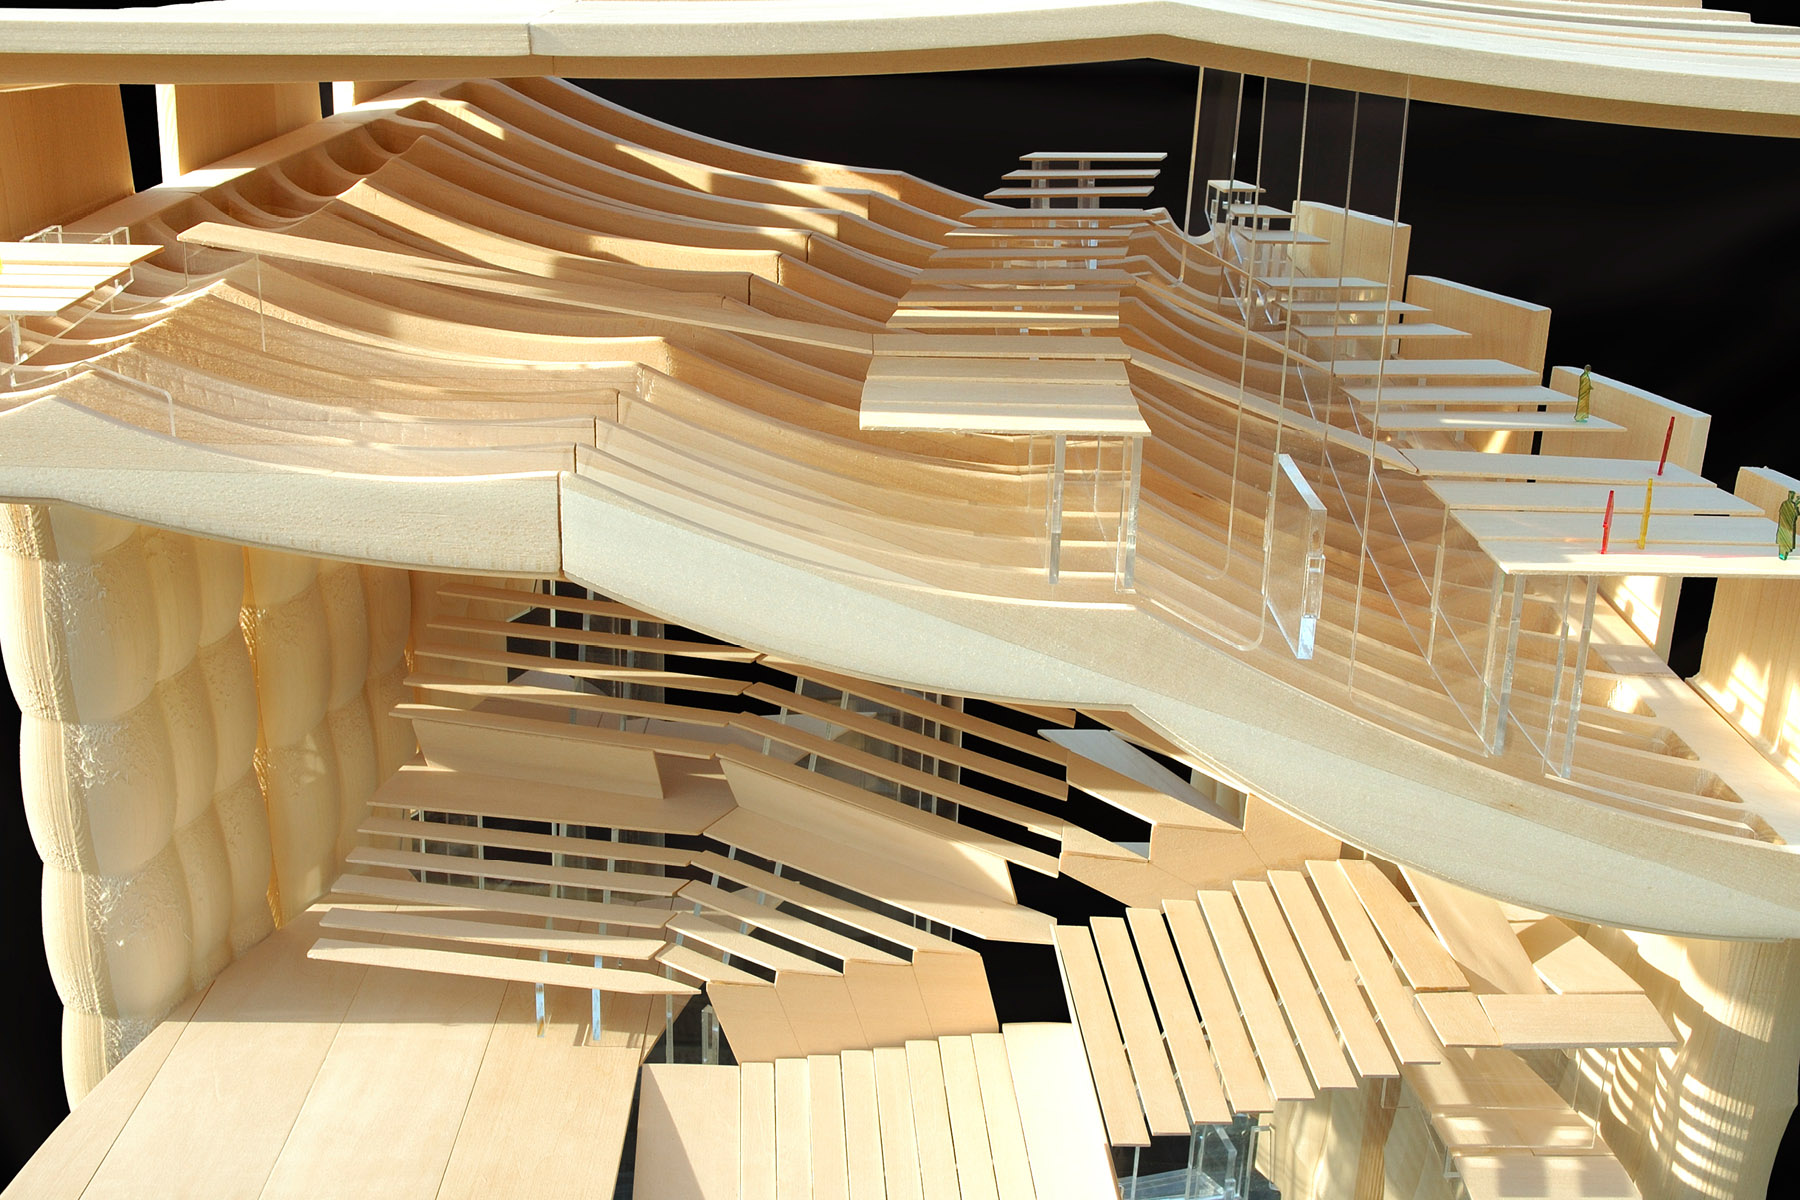 Timber model of the auditorium